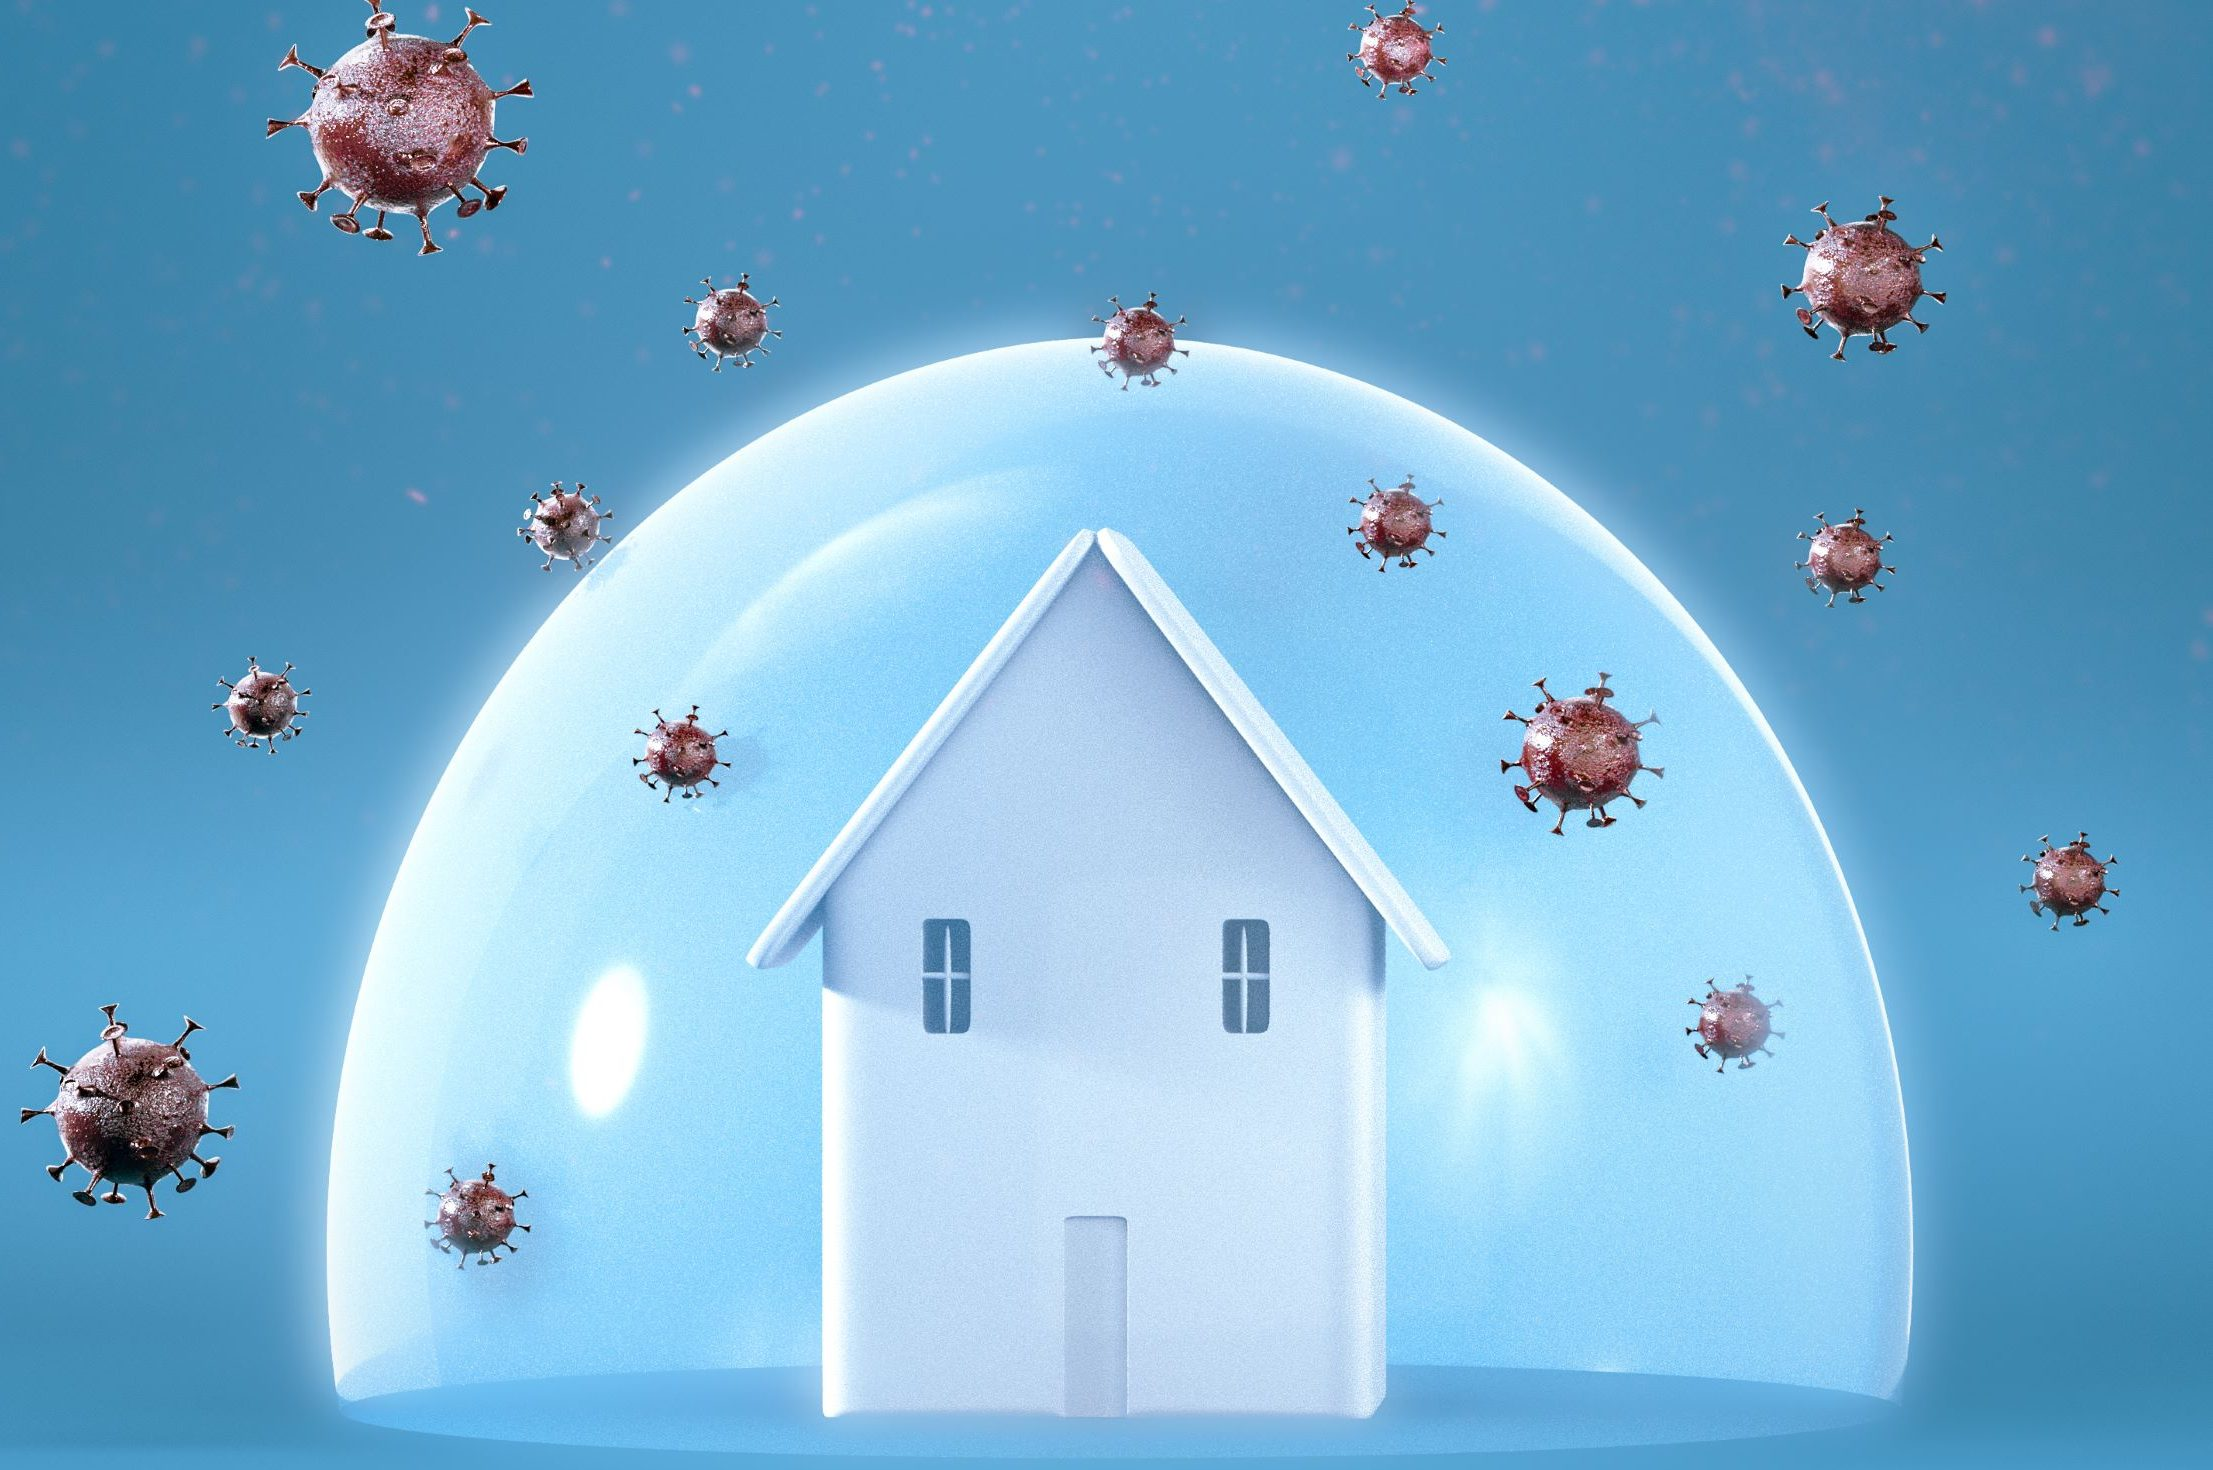 Care home in protective bubble with germs on the outside